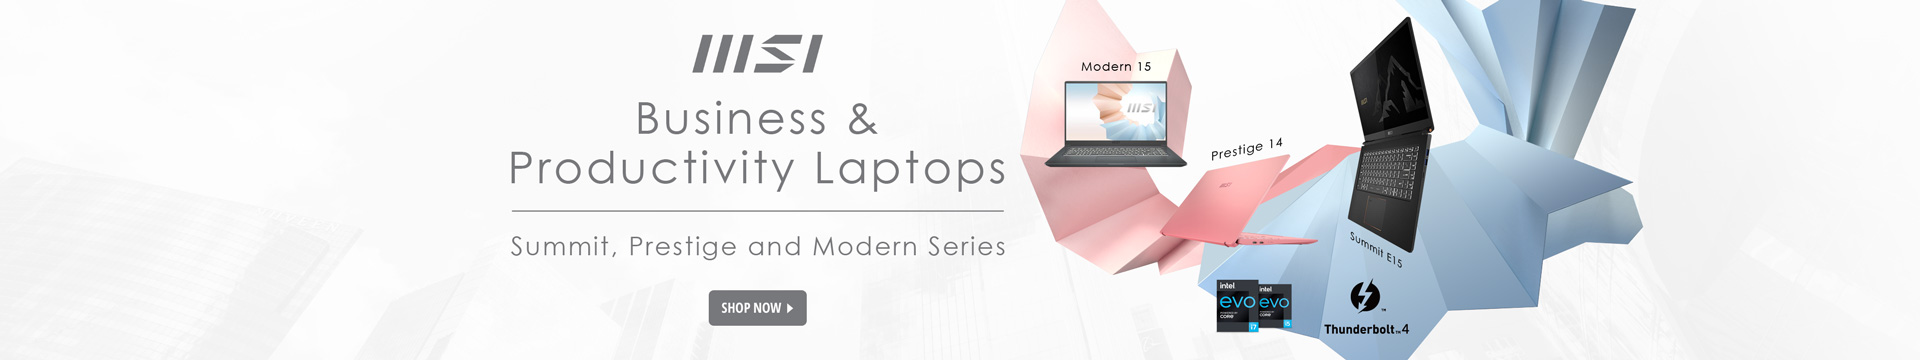 Business & productivity laptops